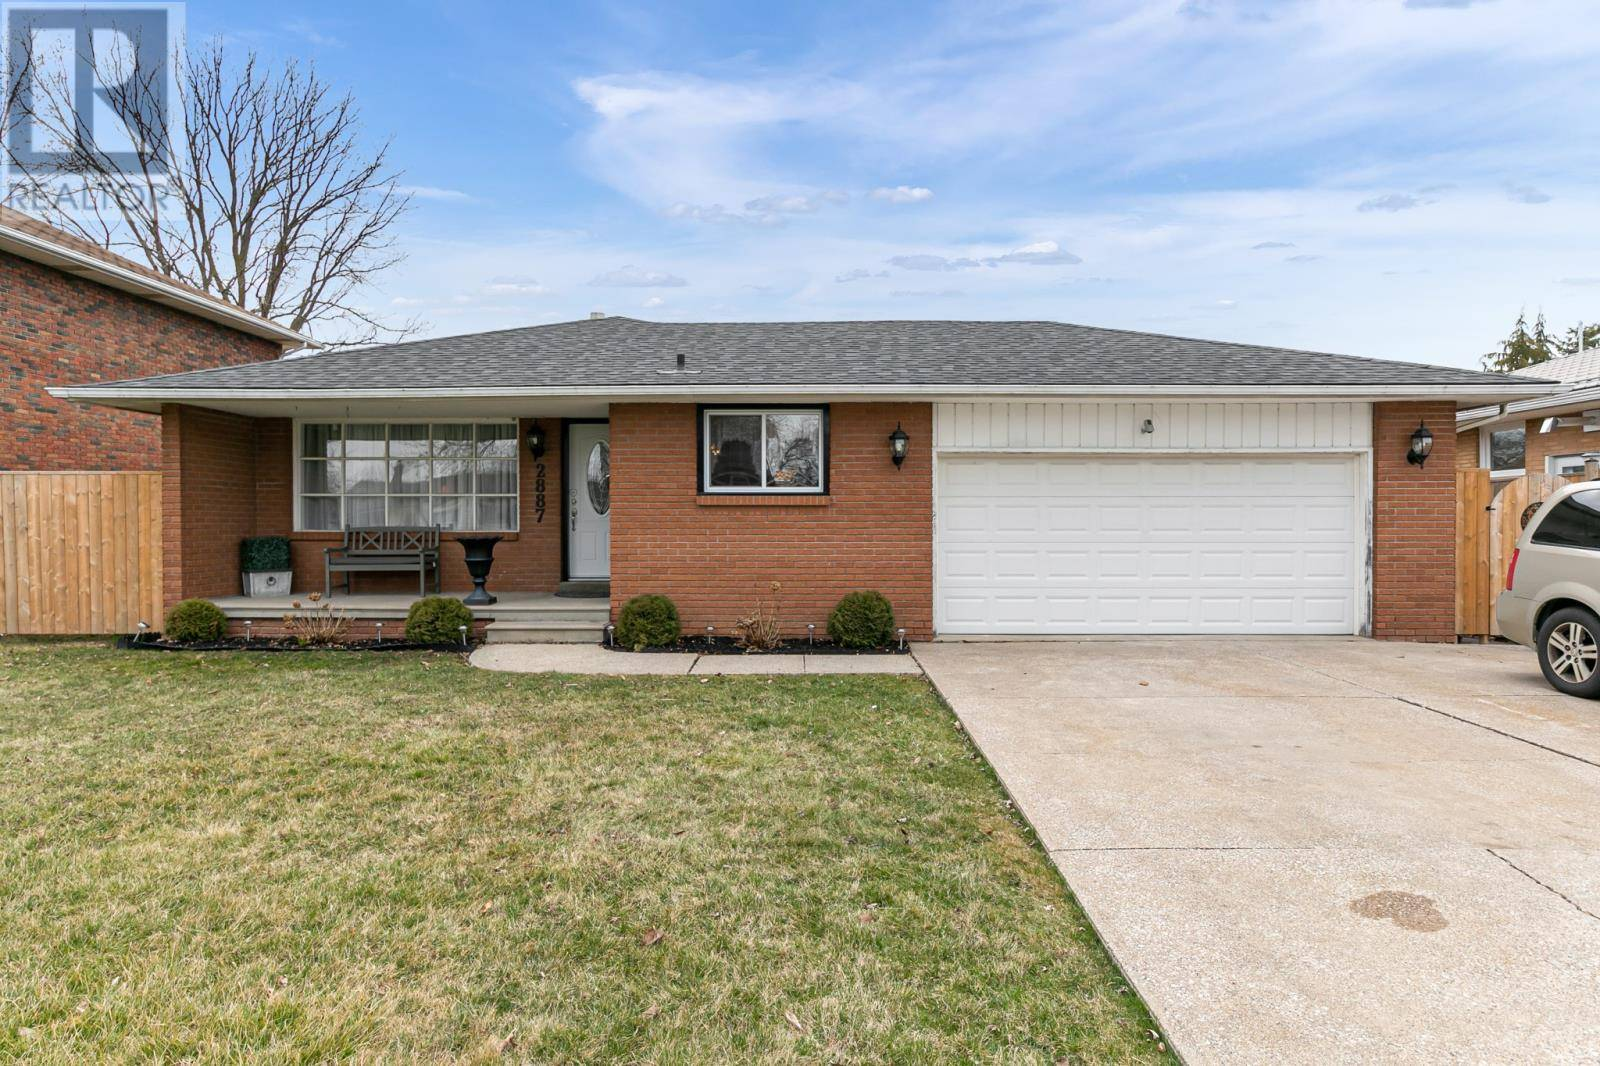 House for sale at 2887 Clemenceau  Windsor Ontario - MLS: 20003703